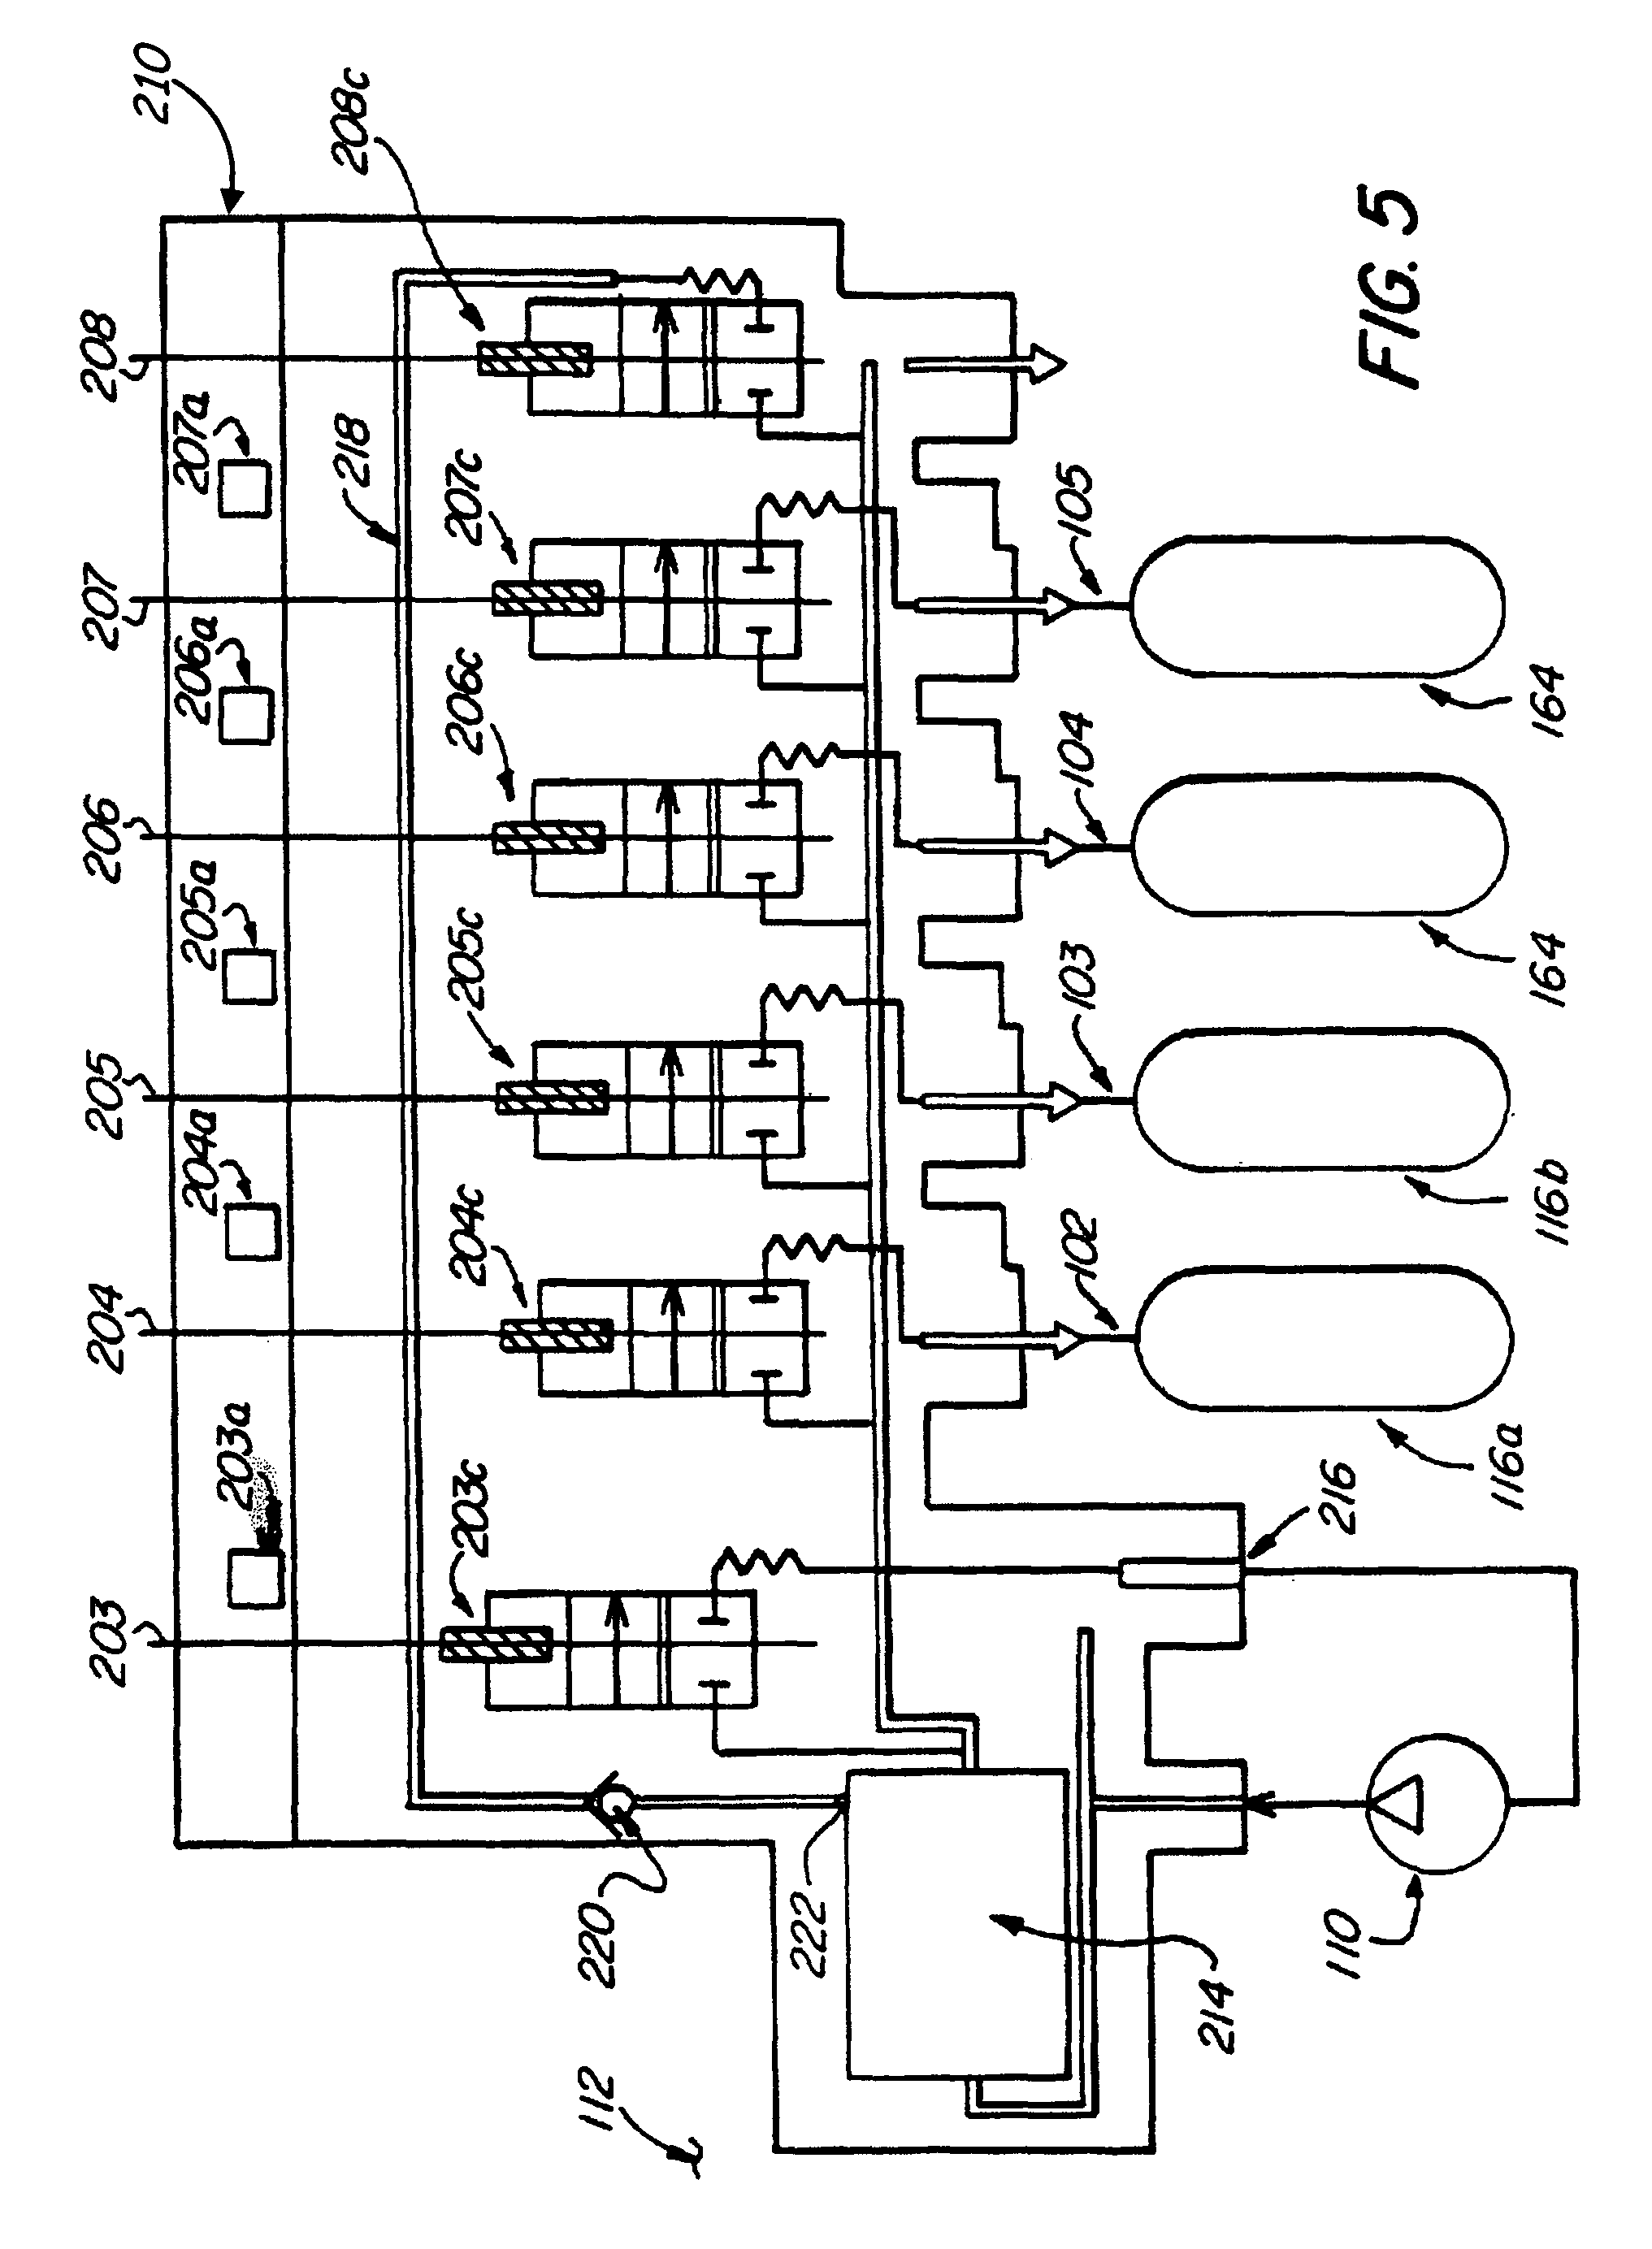 Patent Us7784879 Electronic Control Air Management With Parking Cabin Mate Wiring Diagram Drawing